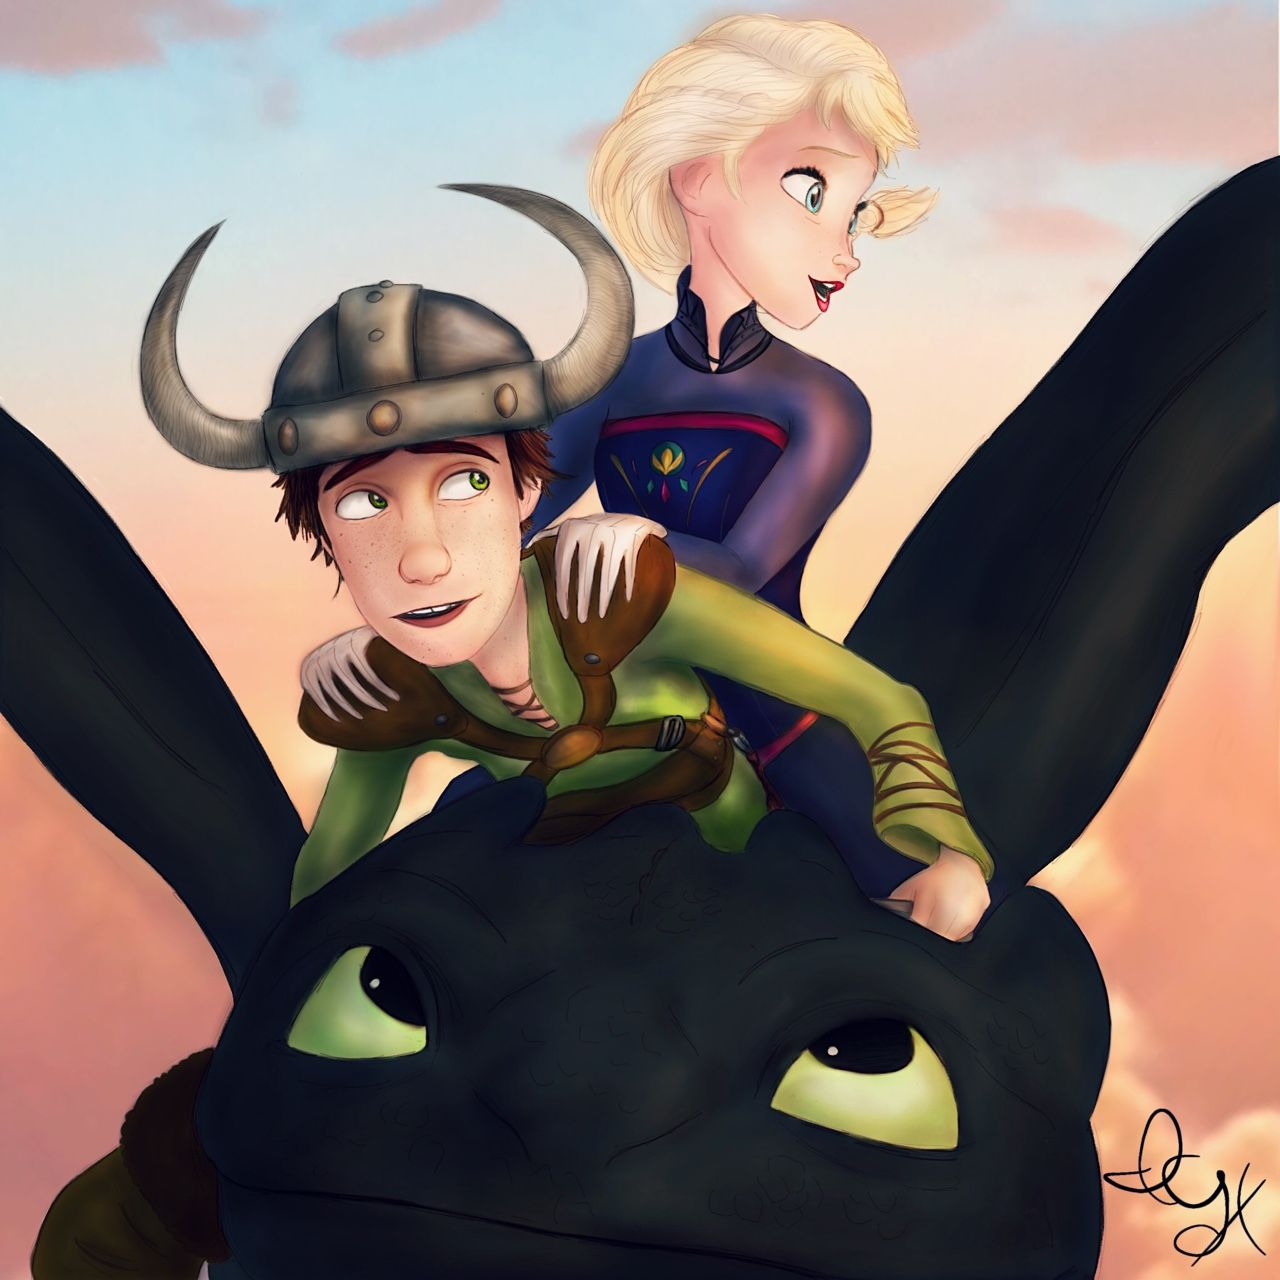 15 year old hiccup giving 16 year old elsa a sunset ride